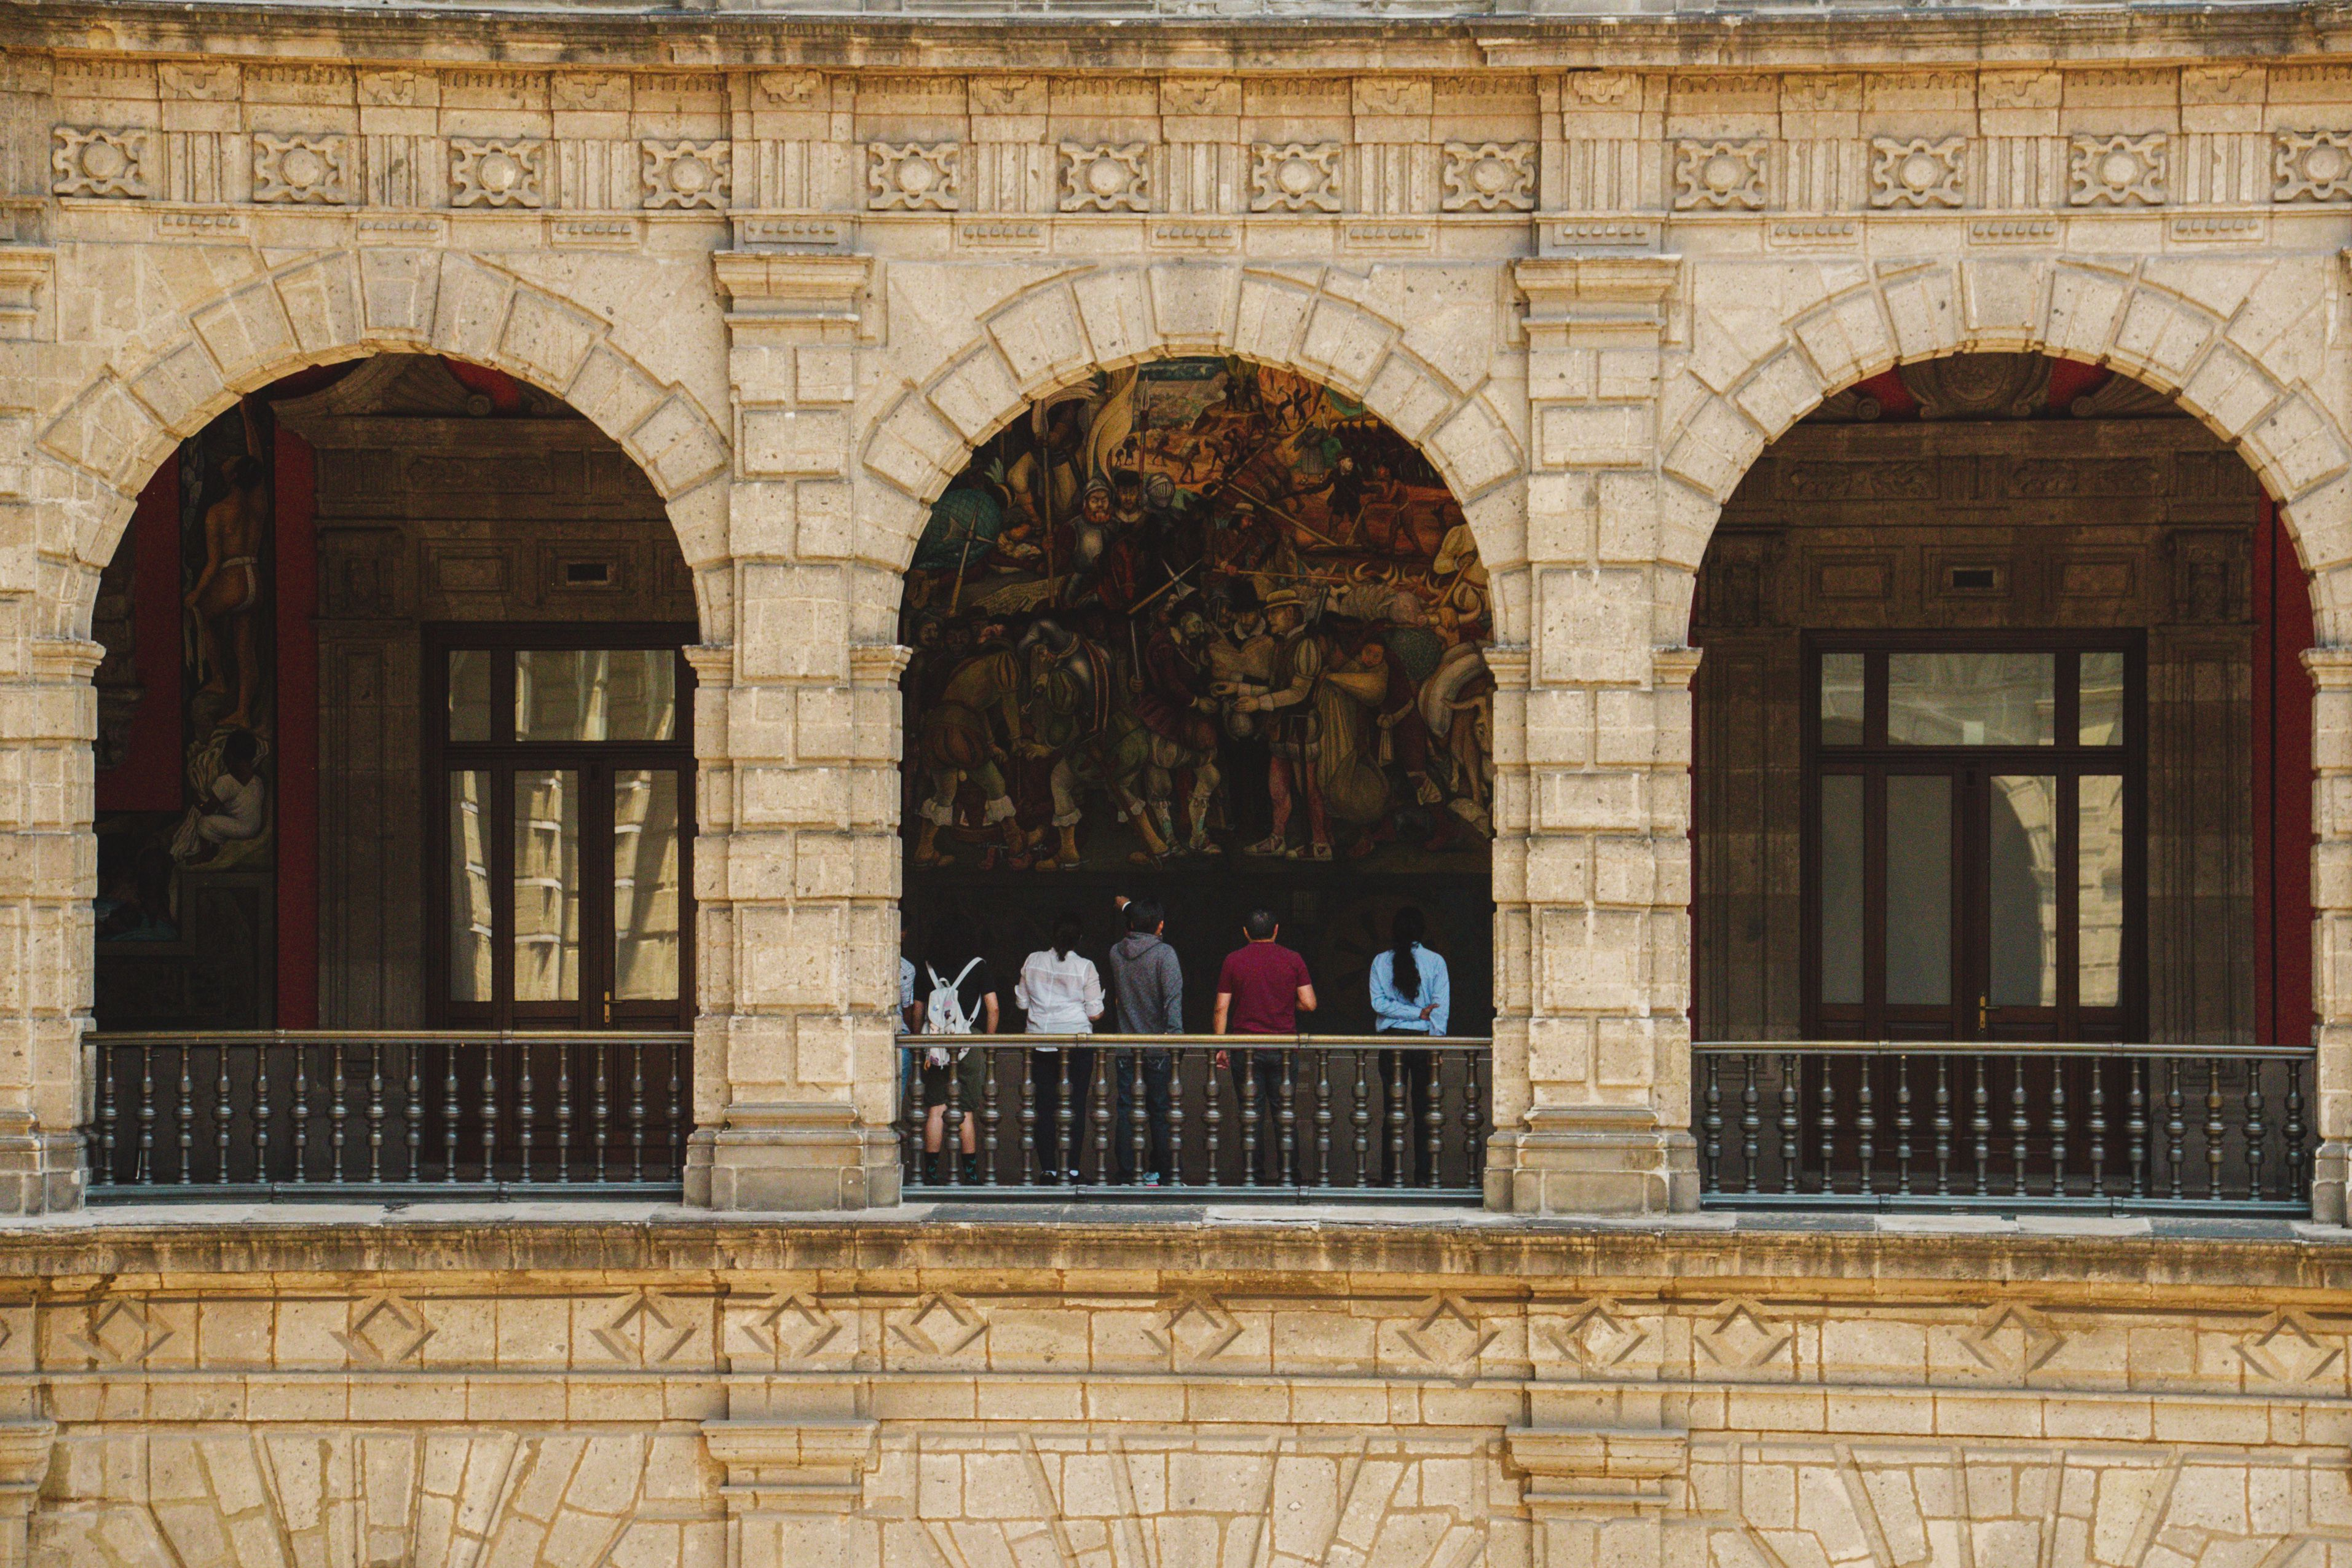 People looking at the mural inside the National Palace